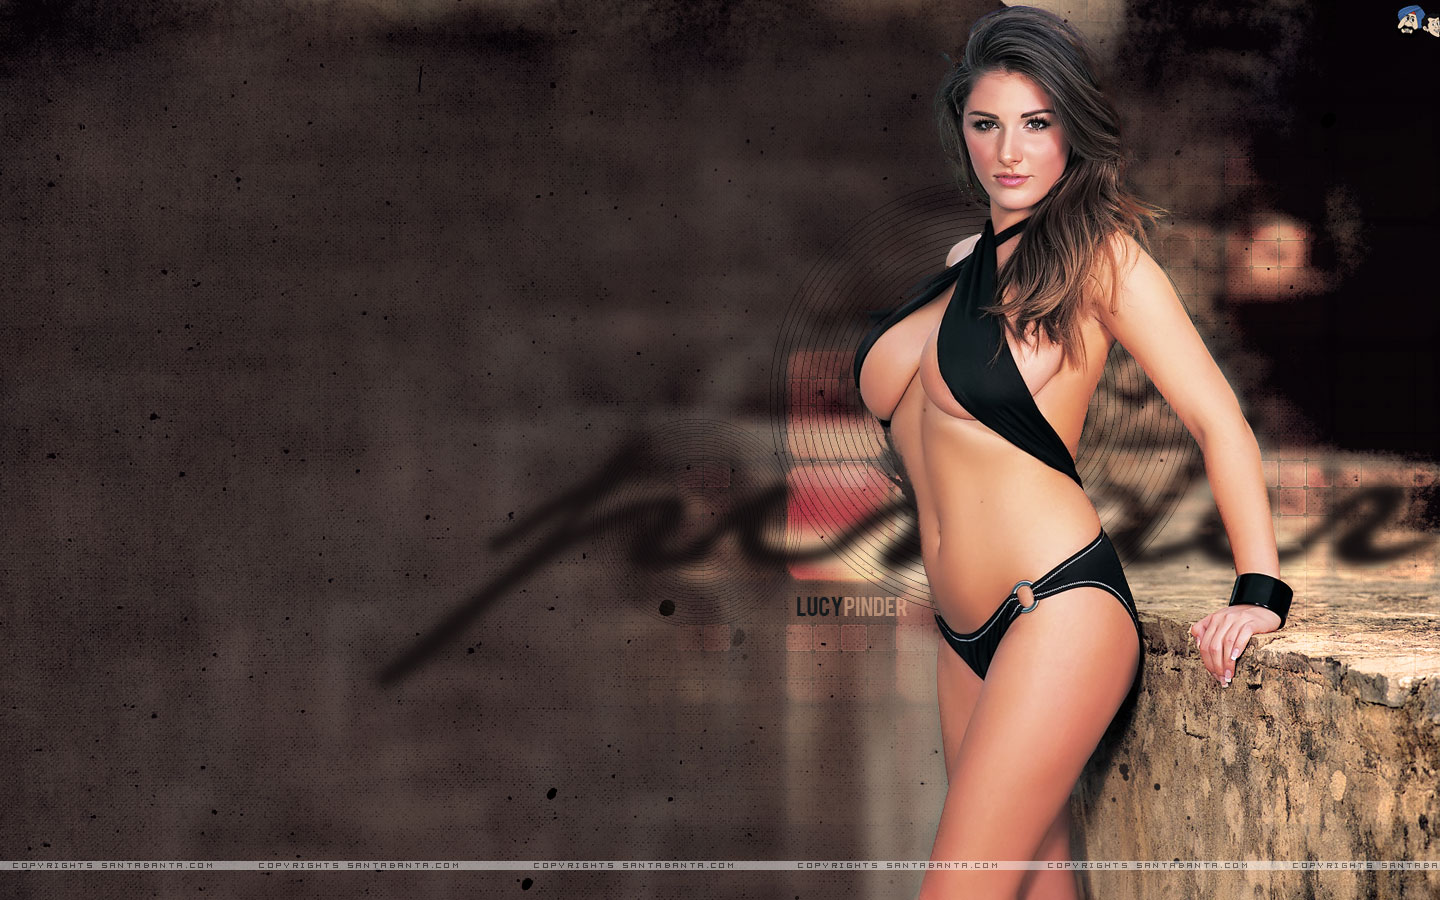 http://1.bp.blogspot.com/-bPioXQHraG4/Td0z3IKH8uI/AAAAAAAAAfE/fRcz0k_HsB0/s1600/lucy-pinder-glamour-model-Modelling-career-lucy-pinder-photos-wallpapers-images-nude-sexy-big-ass-nice-boobs-lucy-pinder-biography-lucy-history-topless-01.jpg